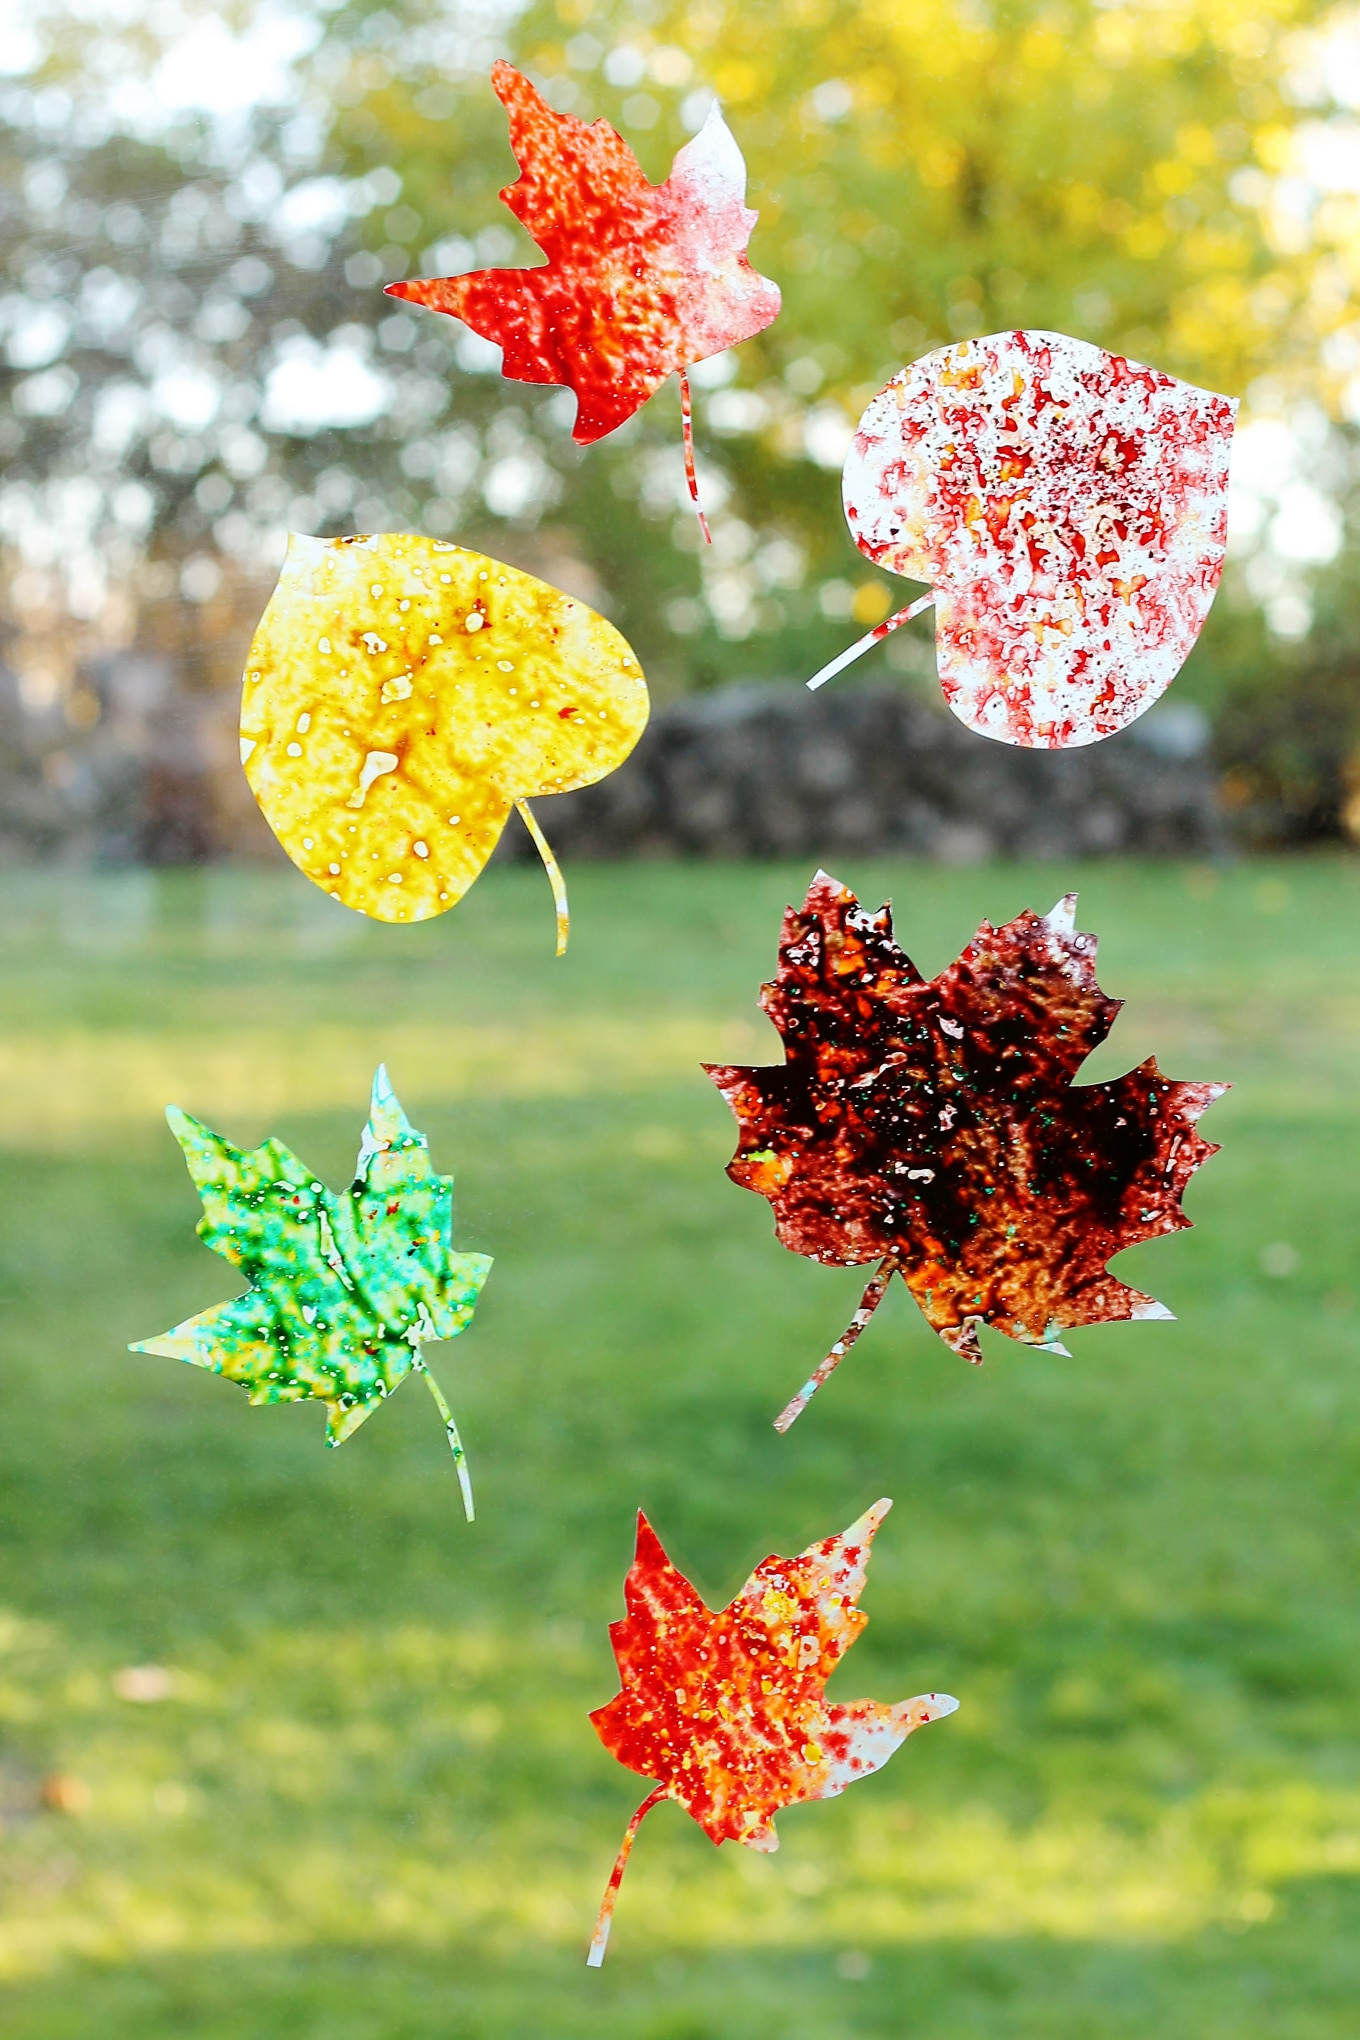 Brighten up your windows with Melted Crayon Leaf Suncatchers, a beautiful fall craft for kids!